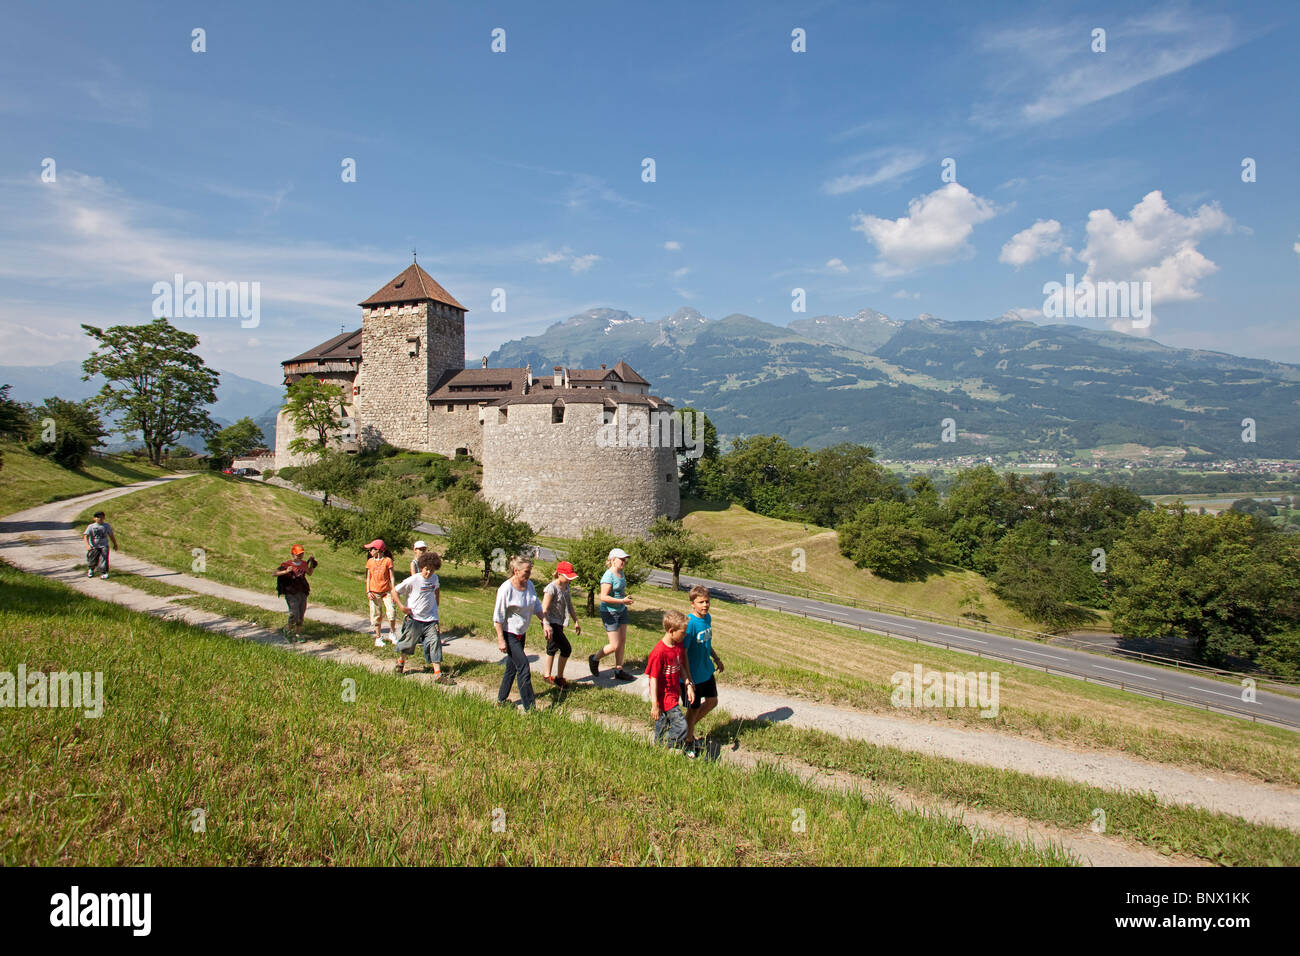 The castle of Vaduz, residence of the Prince of Liechtenstein - Stock Image